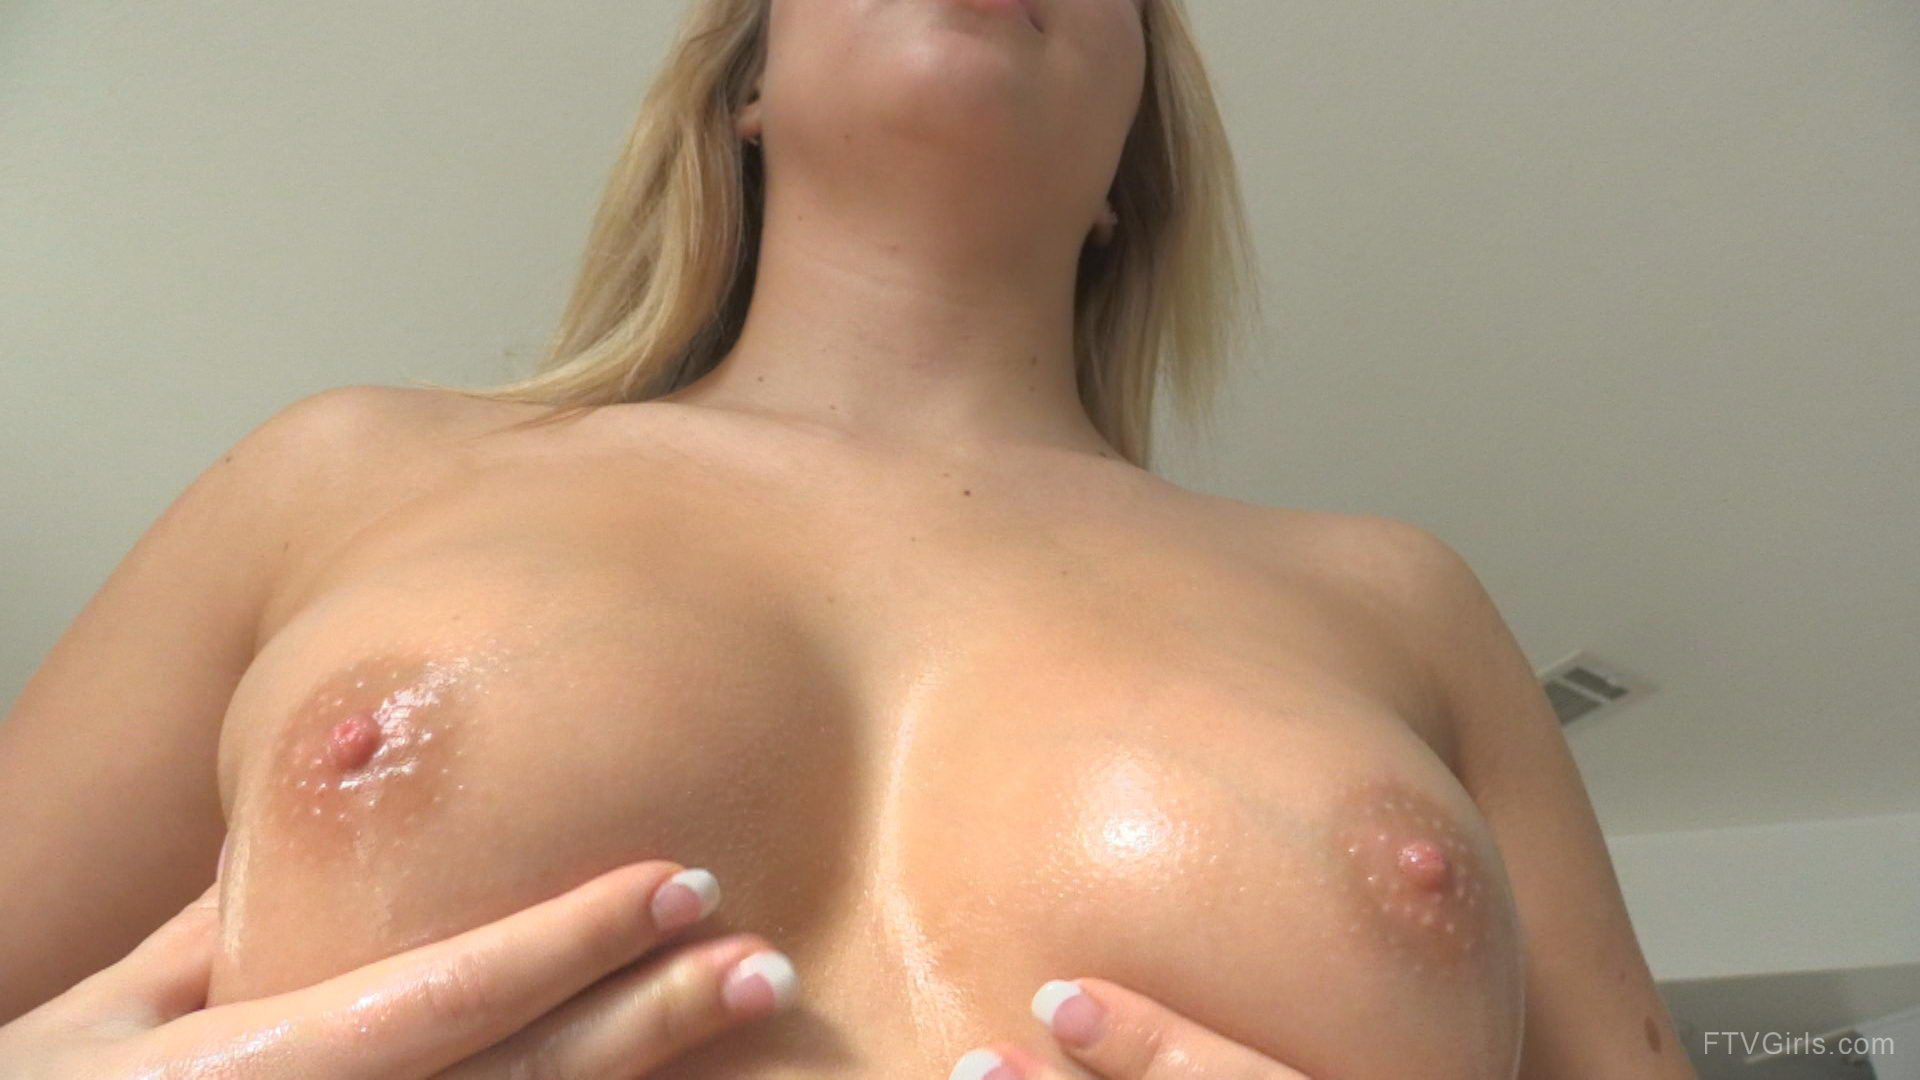 Teen Girl Massaging Her Perfect Naked Boobs